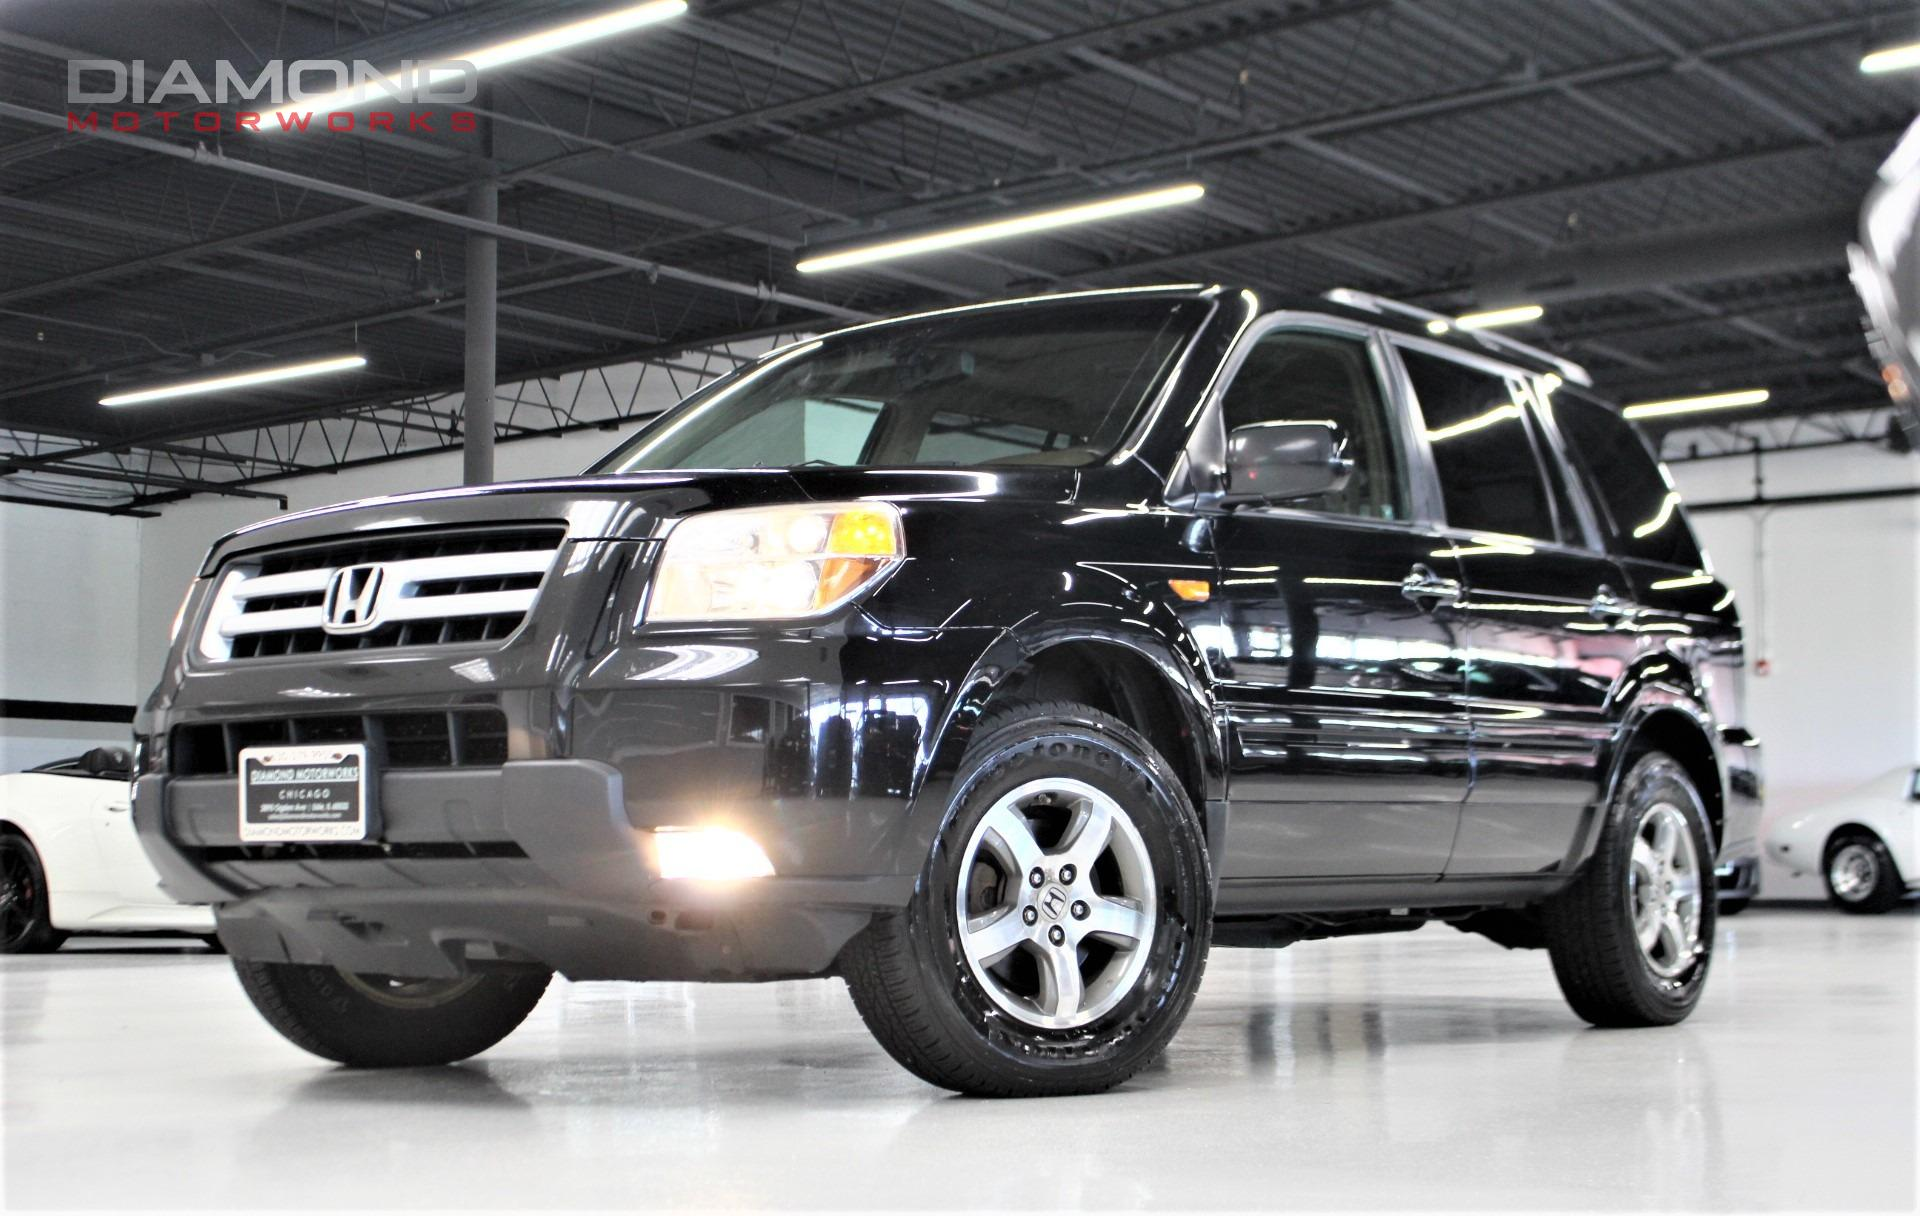 Used Honda Pilot For Sale Near Me >> 2007 Honda Pilot EX-L w/DVD Stock # 526479 for sale near ...